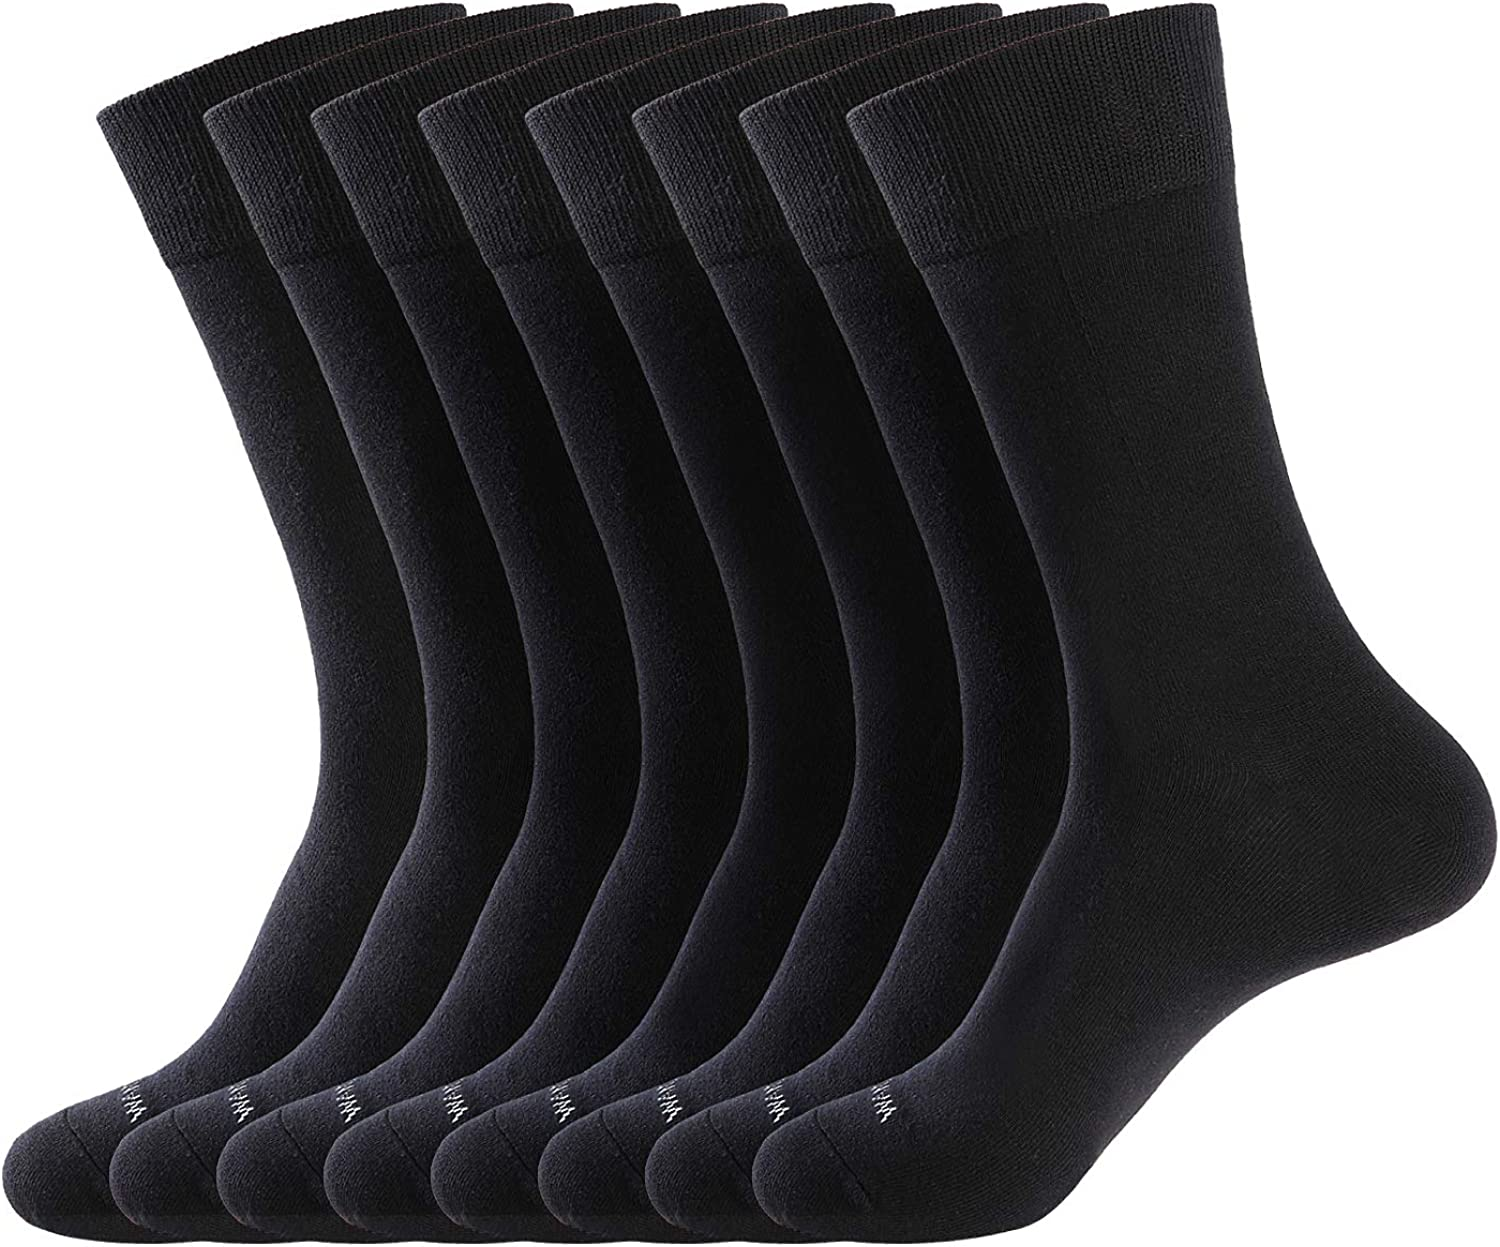 WANDER Men's Dress Socks Cotton Thin Classic lightweight Socks 8 pairs Solid Soft Breathable Socks